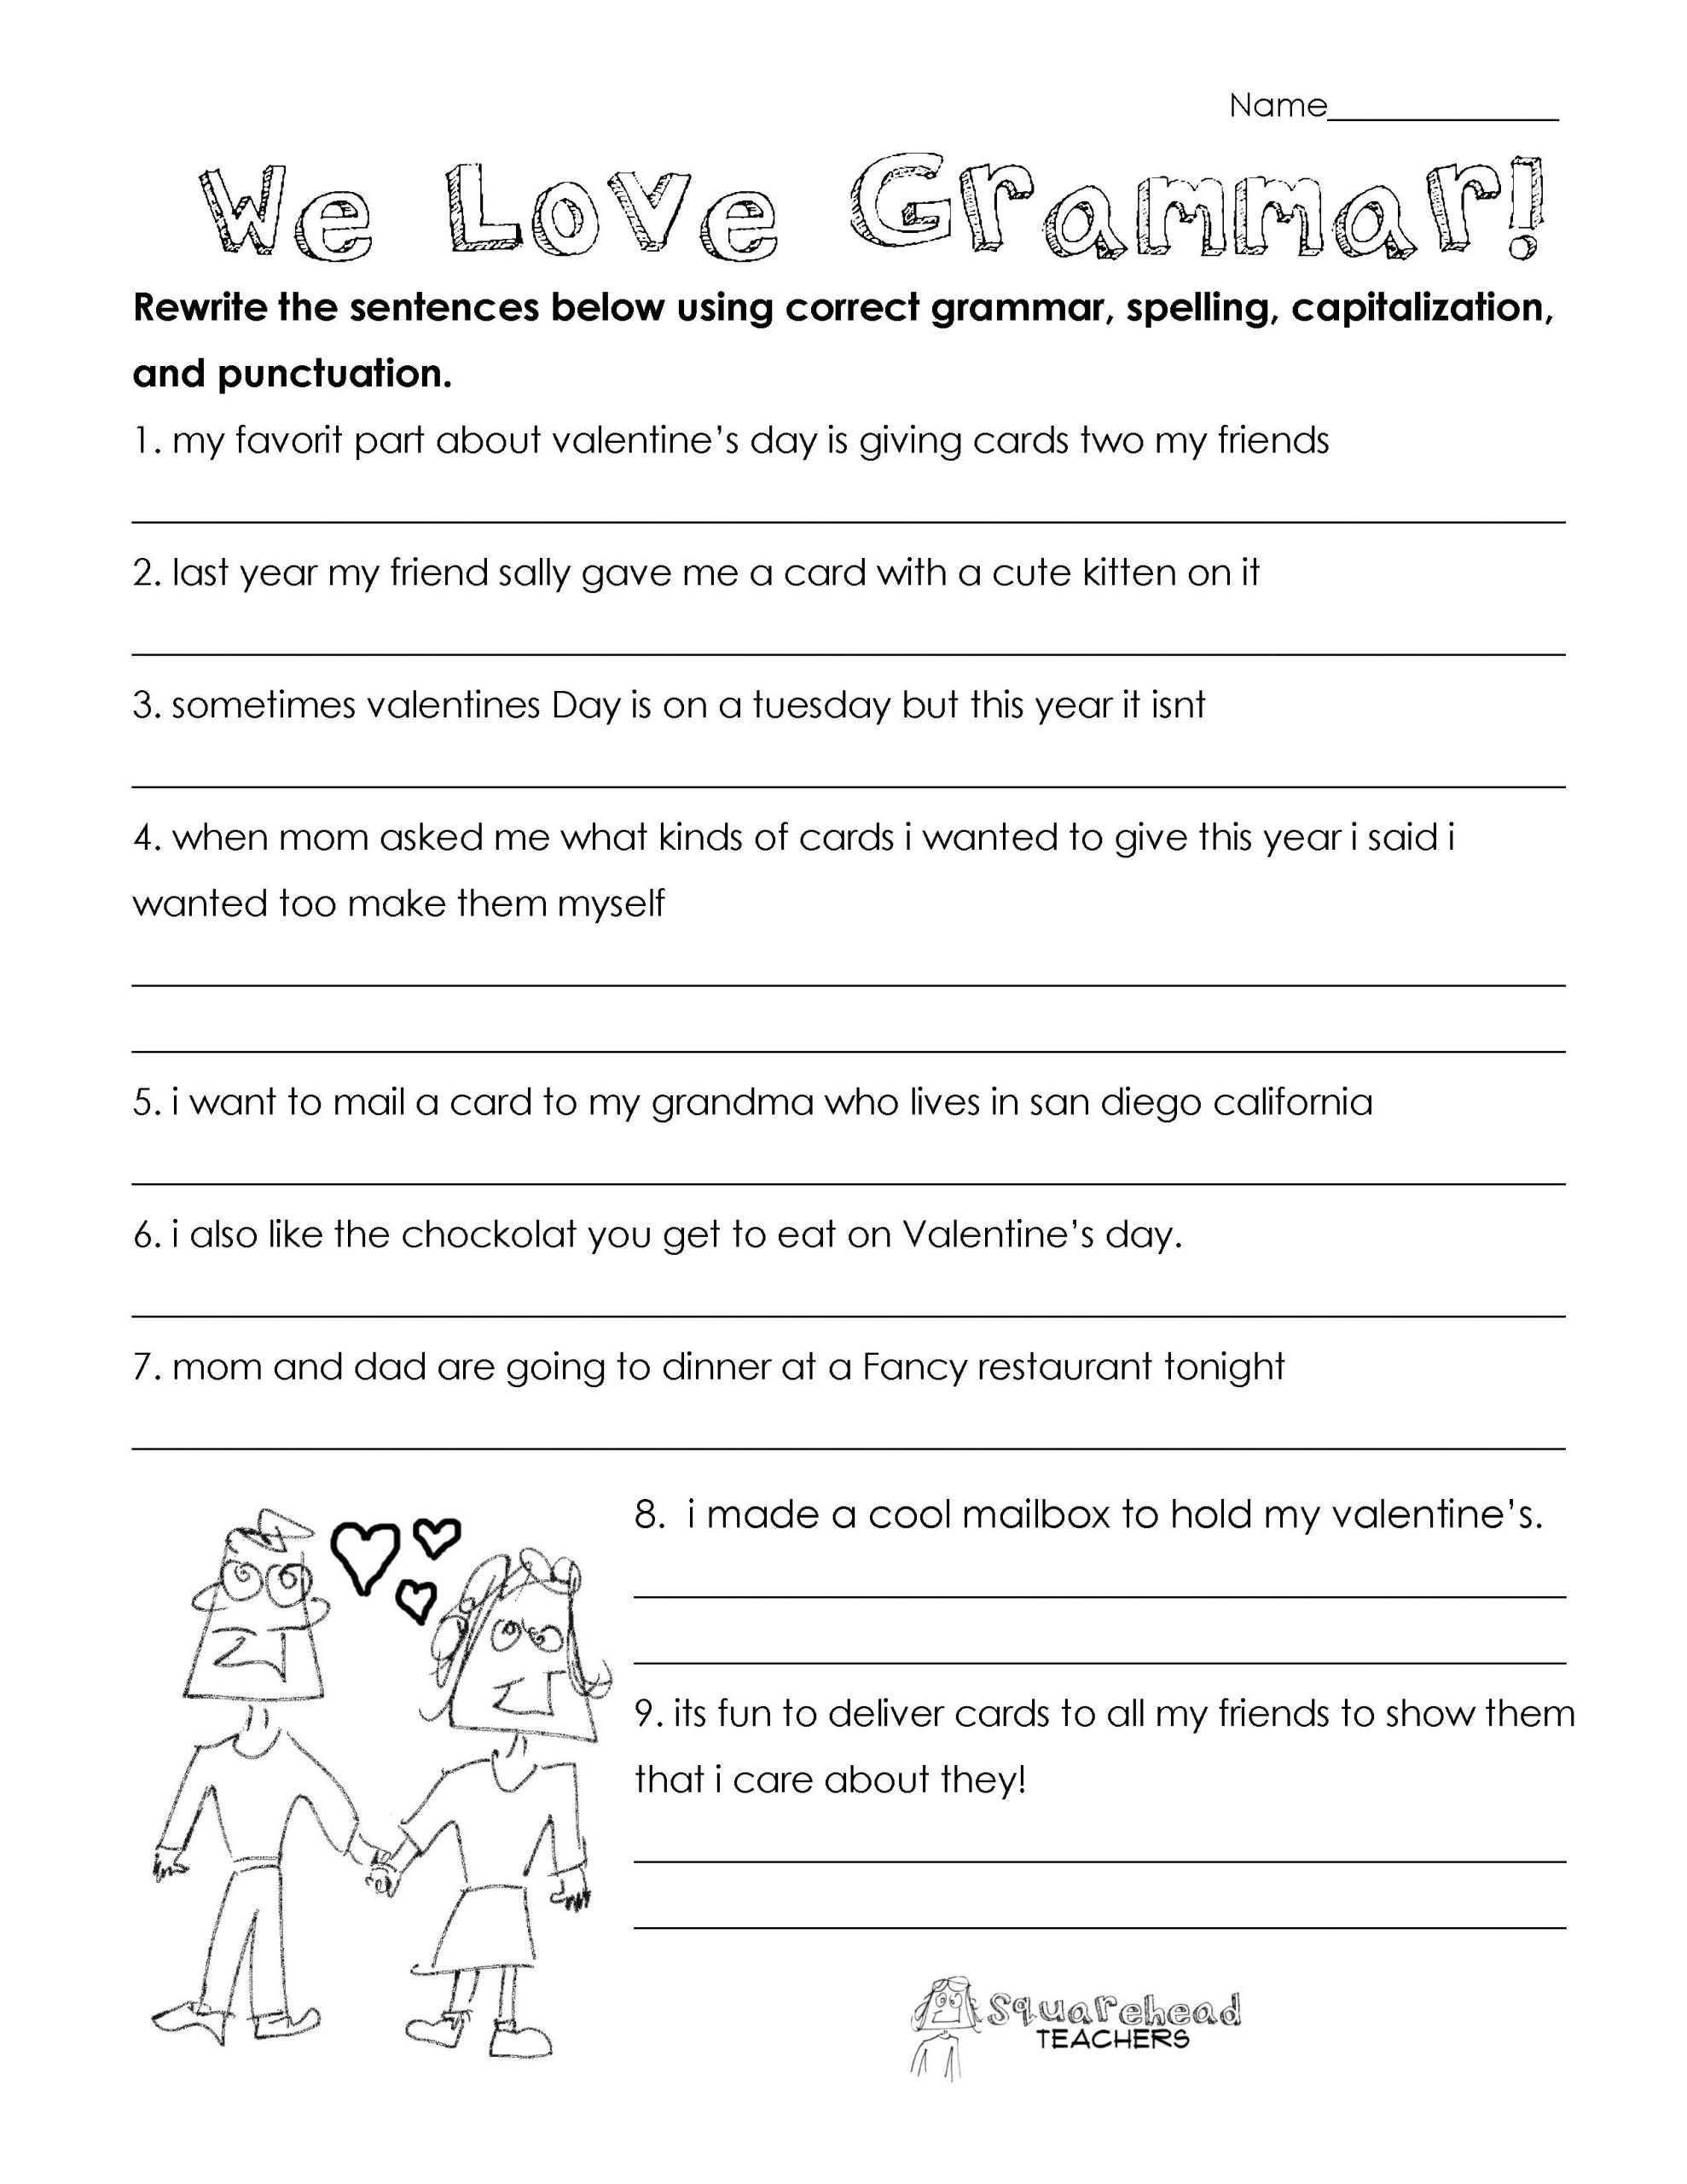 Free Printable Punctuation Worksheets Valentine S Day Grammar Free Worksheet for 3rd Grade and Up